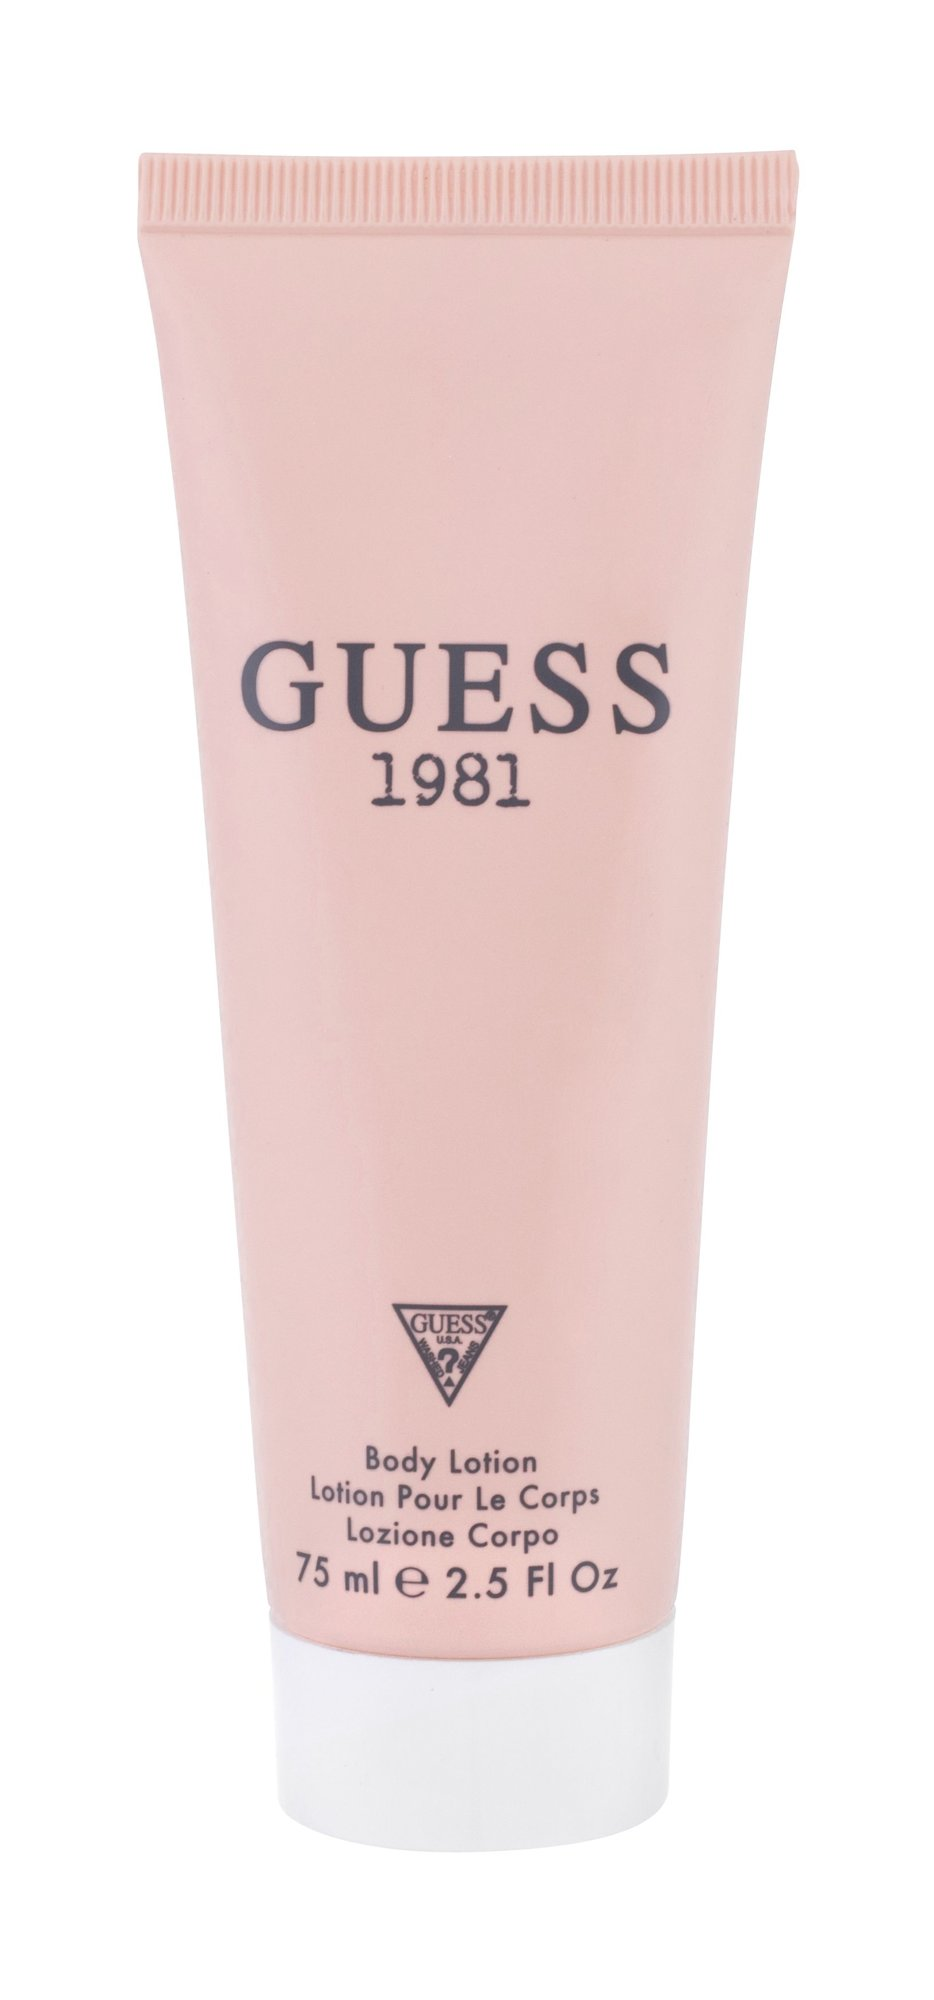 GUESS Guess 1981 Body lotion 75ml